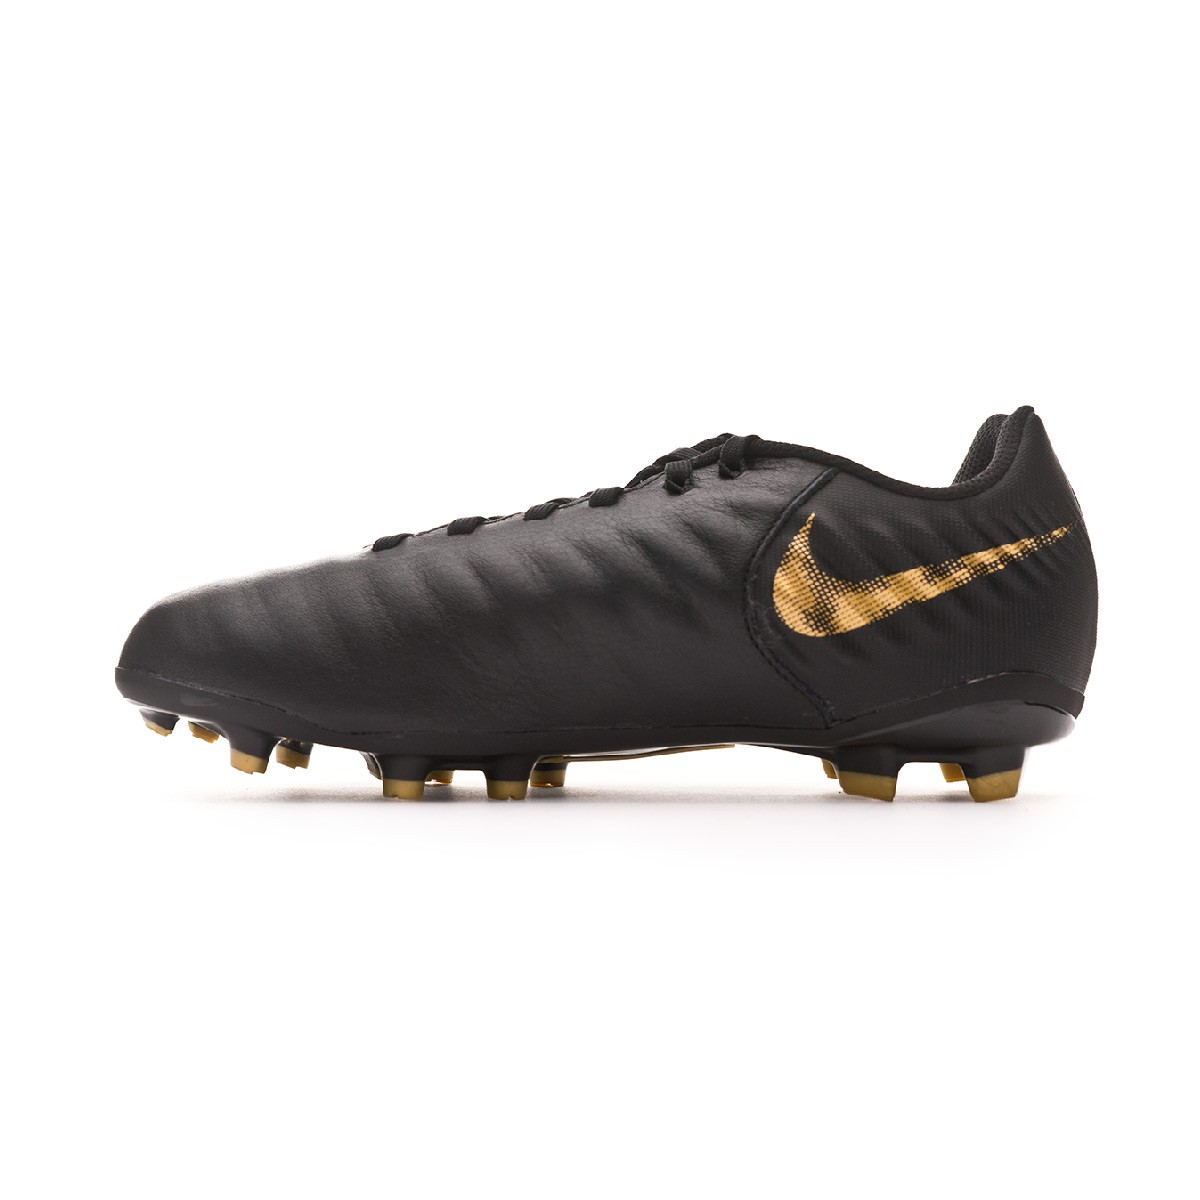 08da3d789 Football Boots Nike Tiempo Legend VII Academy MG Niño Black-Metallic vivid  gold - Football store Fútbol Emotion